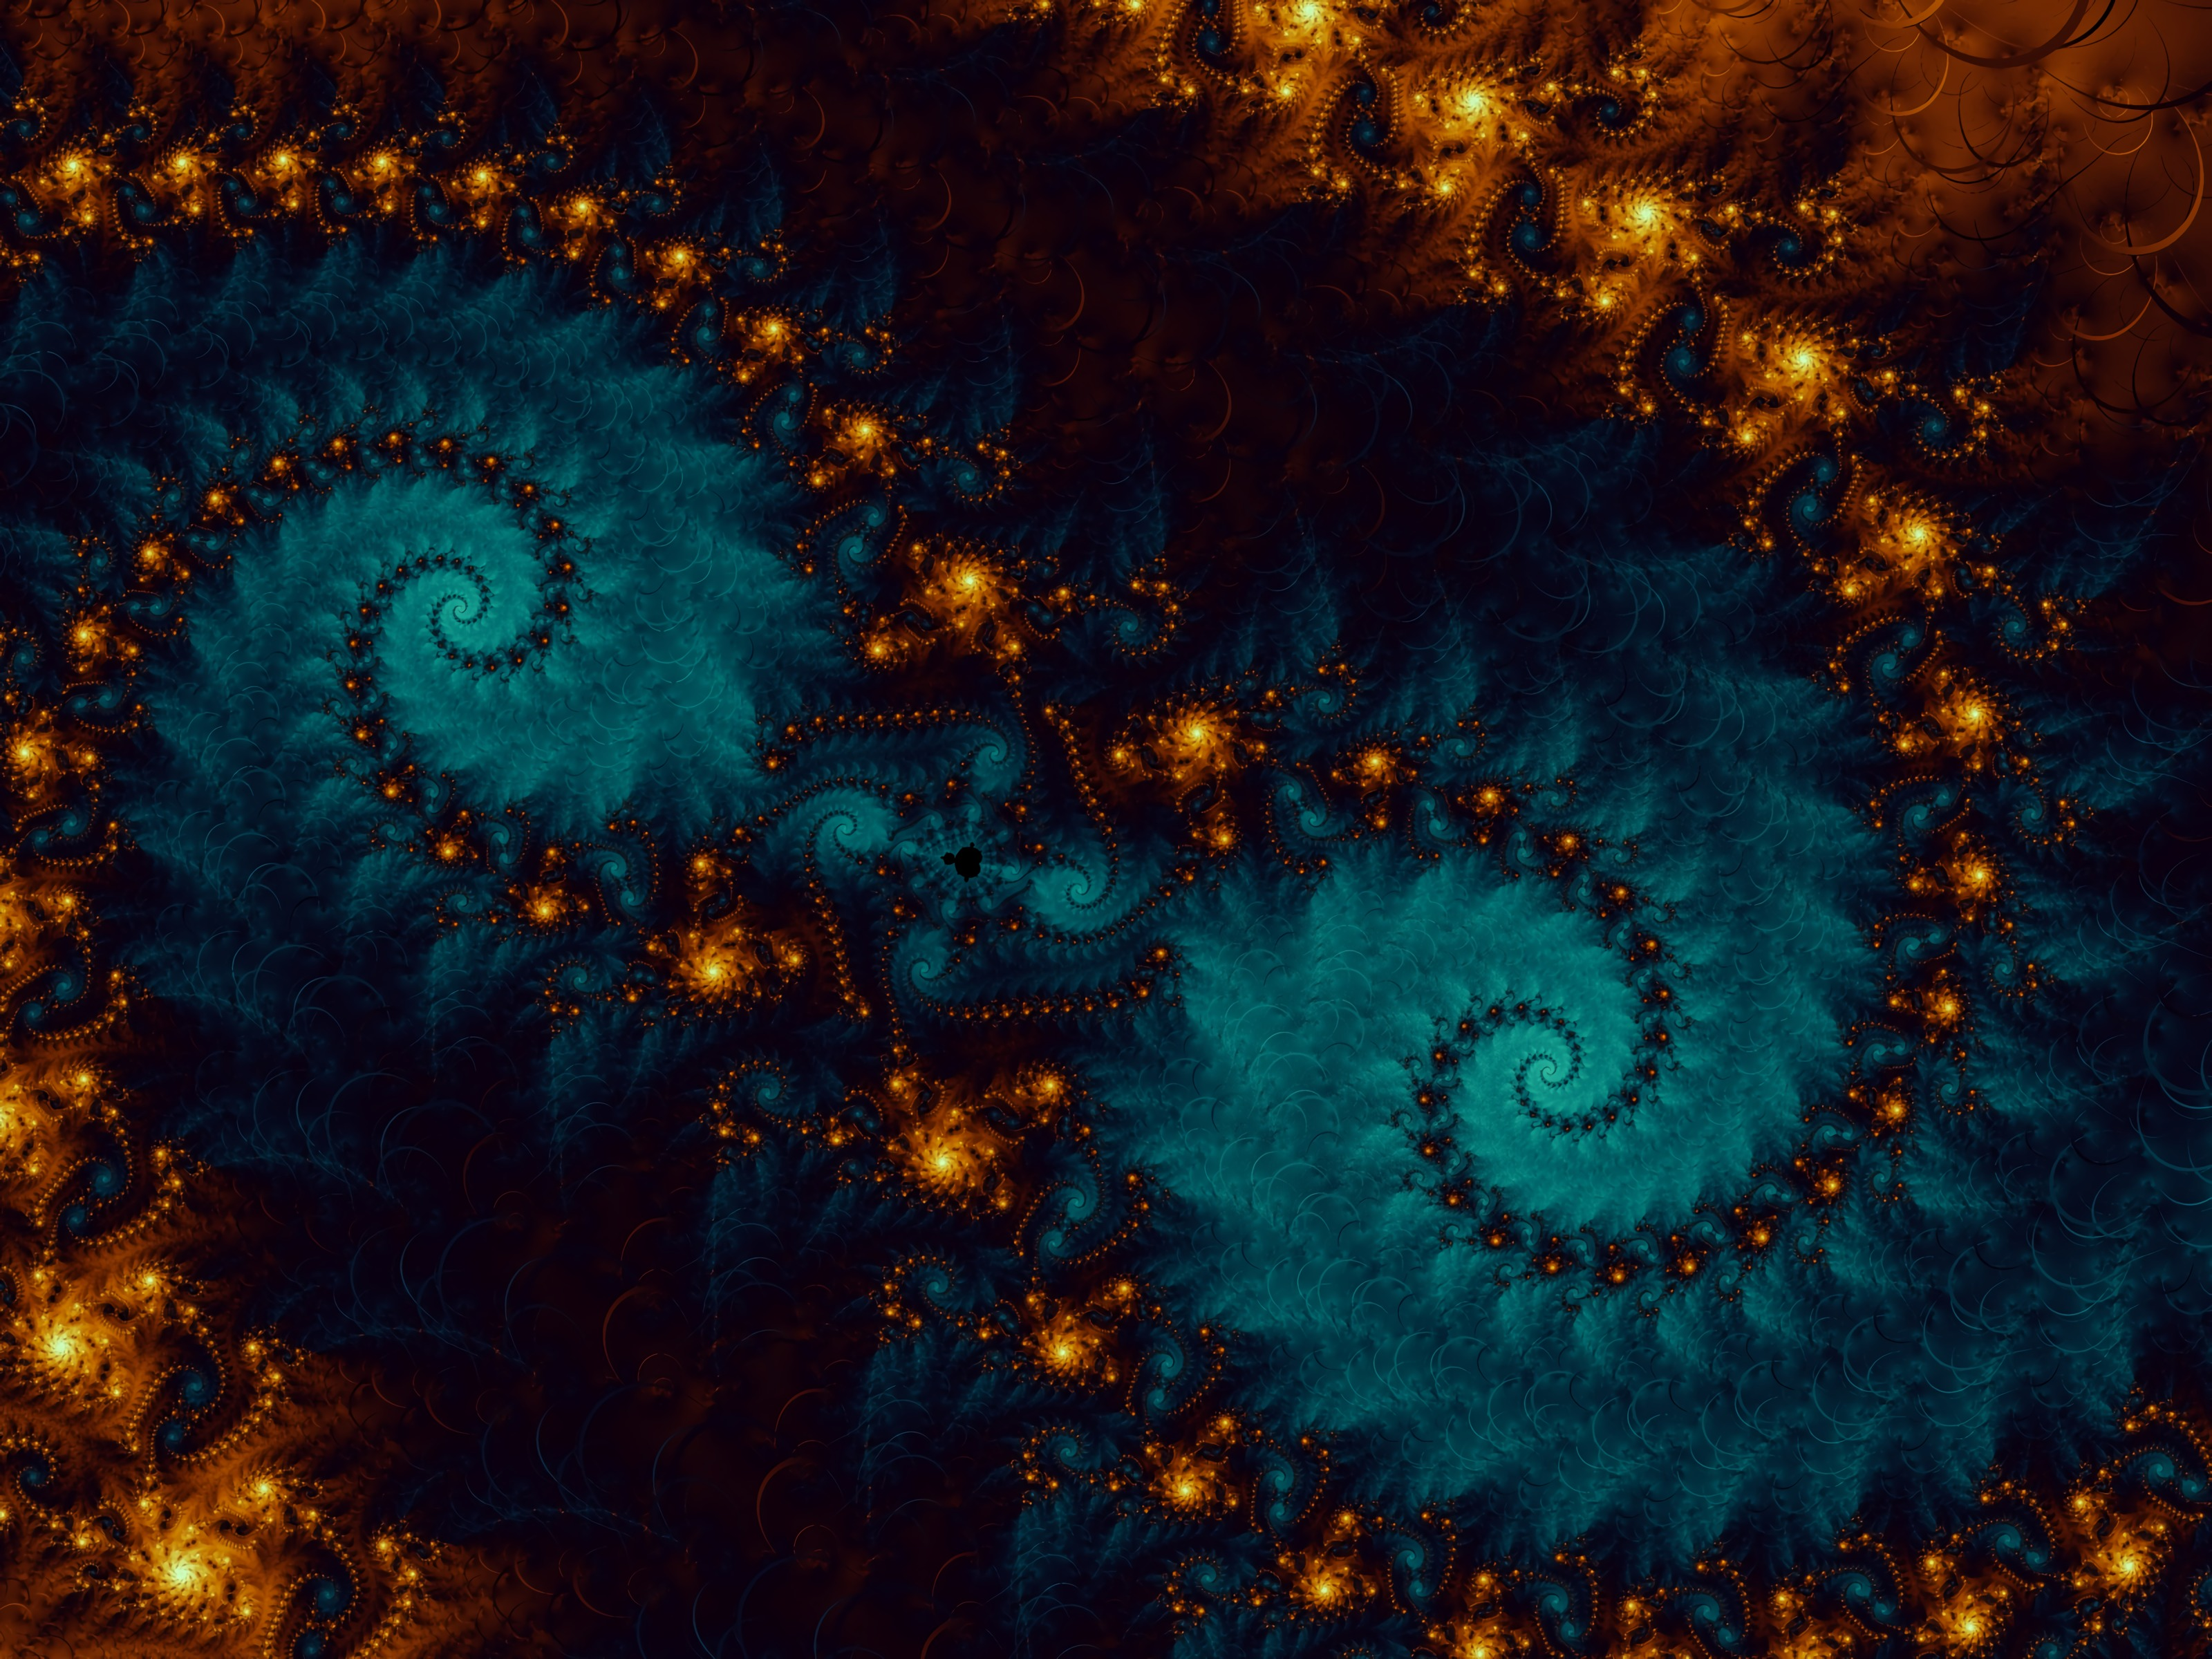 87171 Screensavers and Wallpapers Swirling for phone. Download Abstract, Pattern, Fractal, Spiral, Swirling, Involute pictures for free